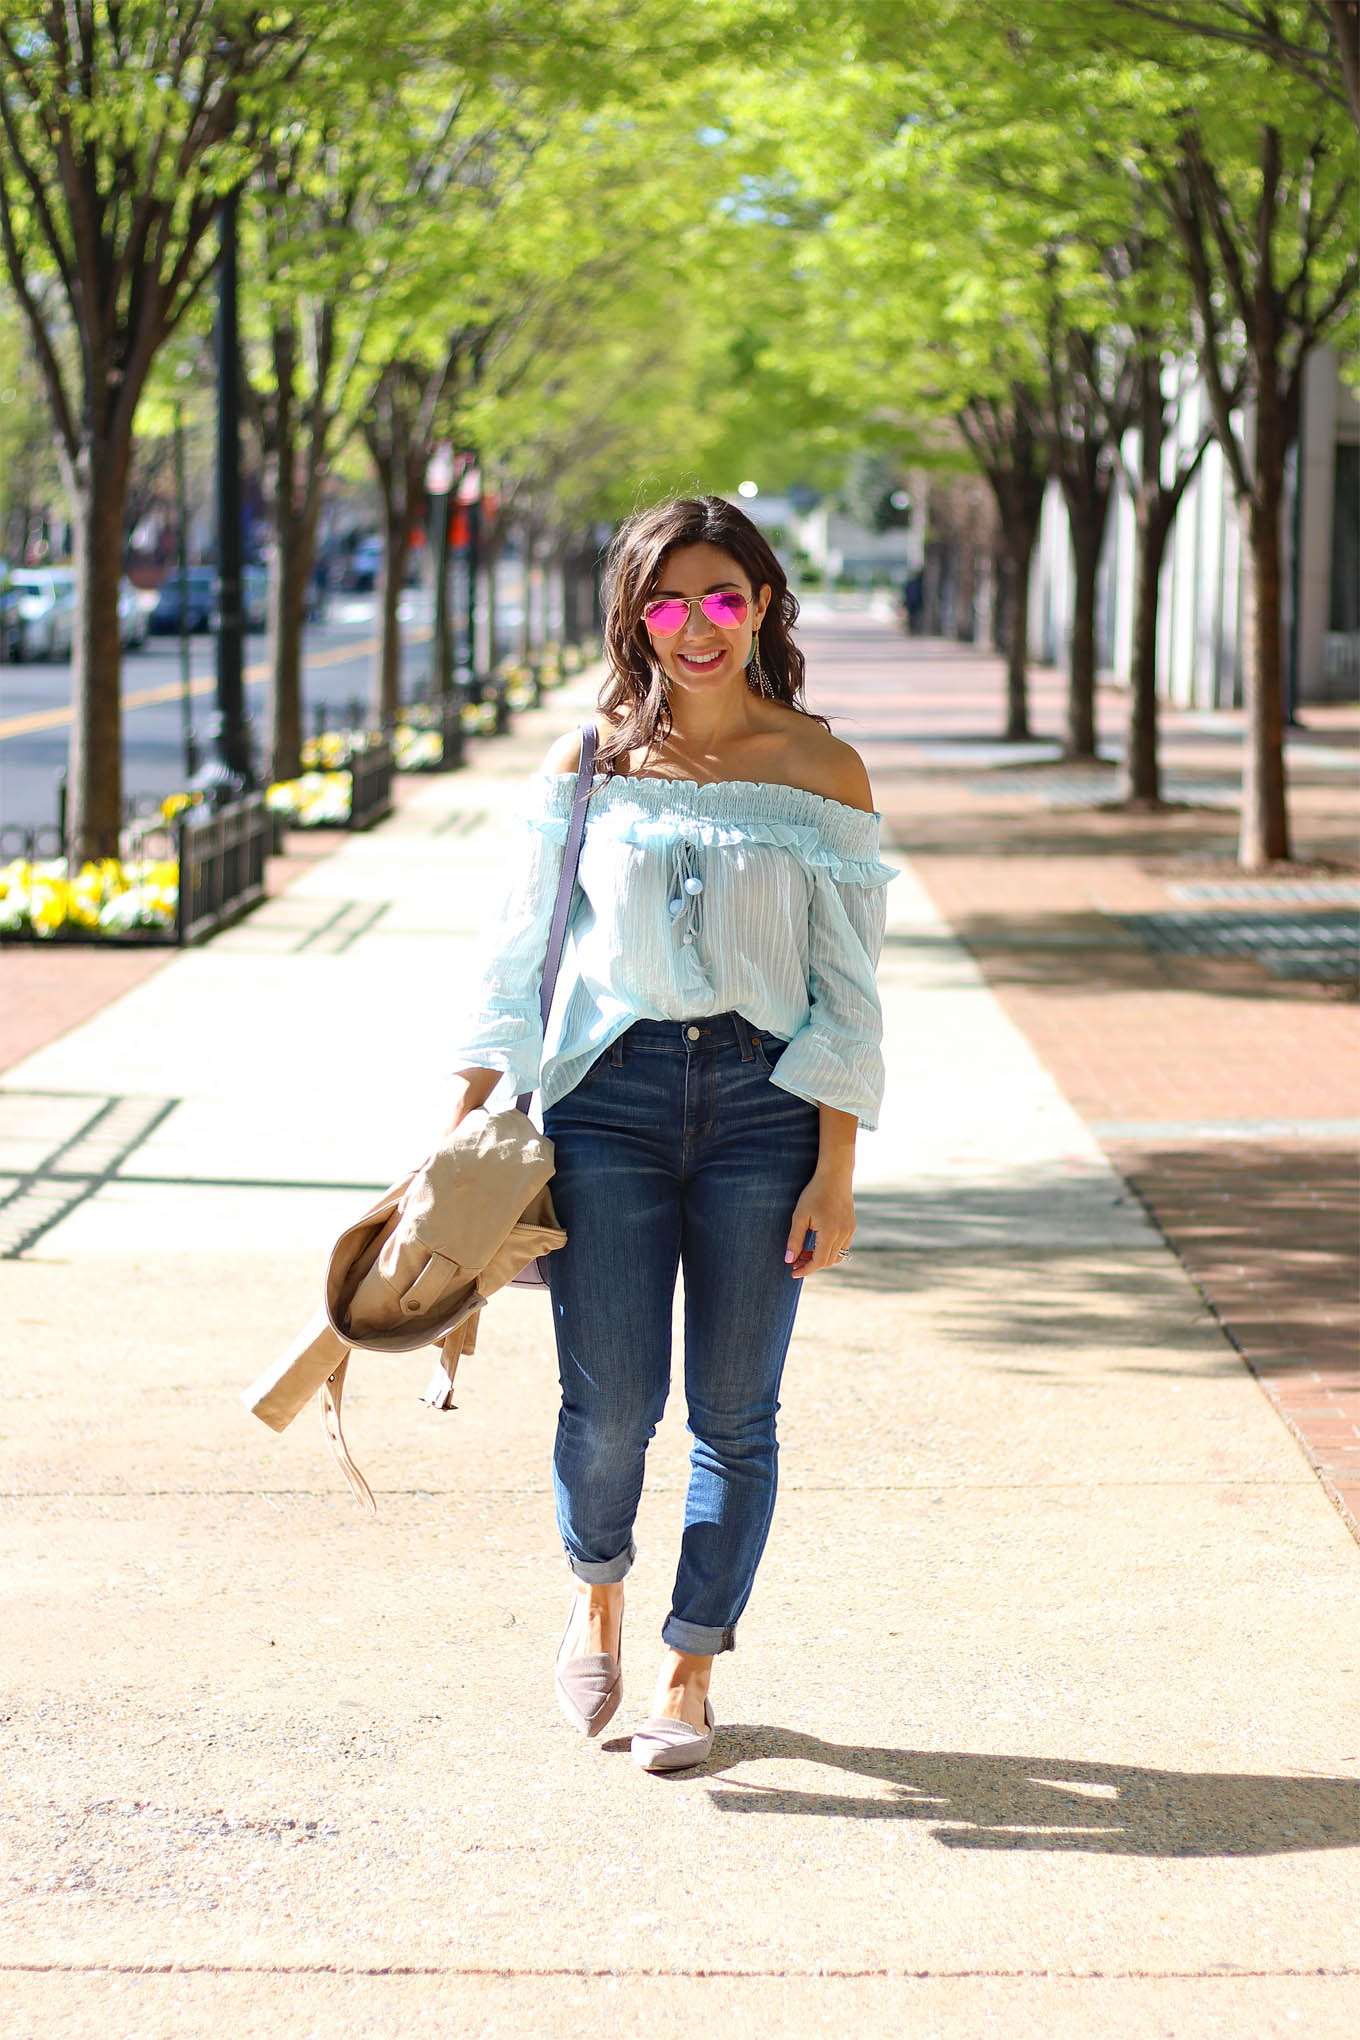 Lifestyle Blogger Roxanne of Glass of Glam wearing a sky blue sugarlips top, Tobi faux suede jacket, M.Gemi Flats, Madewell denim, and a Justfab bag